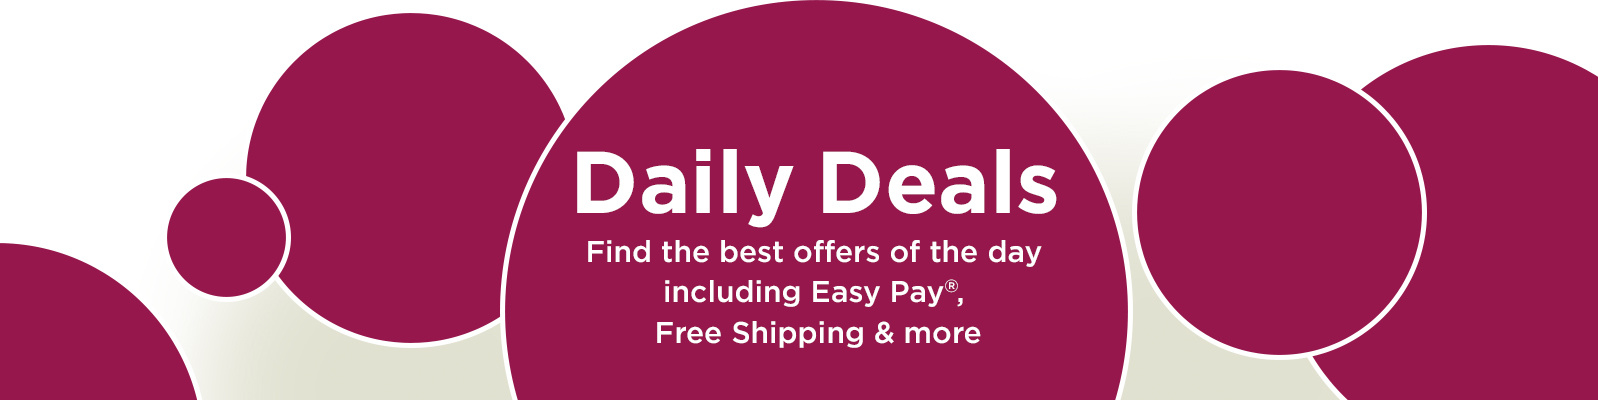 Daily Deals. Find the best offers of the day including Easy Pay®, Free Shipping & more.